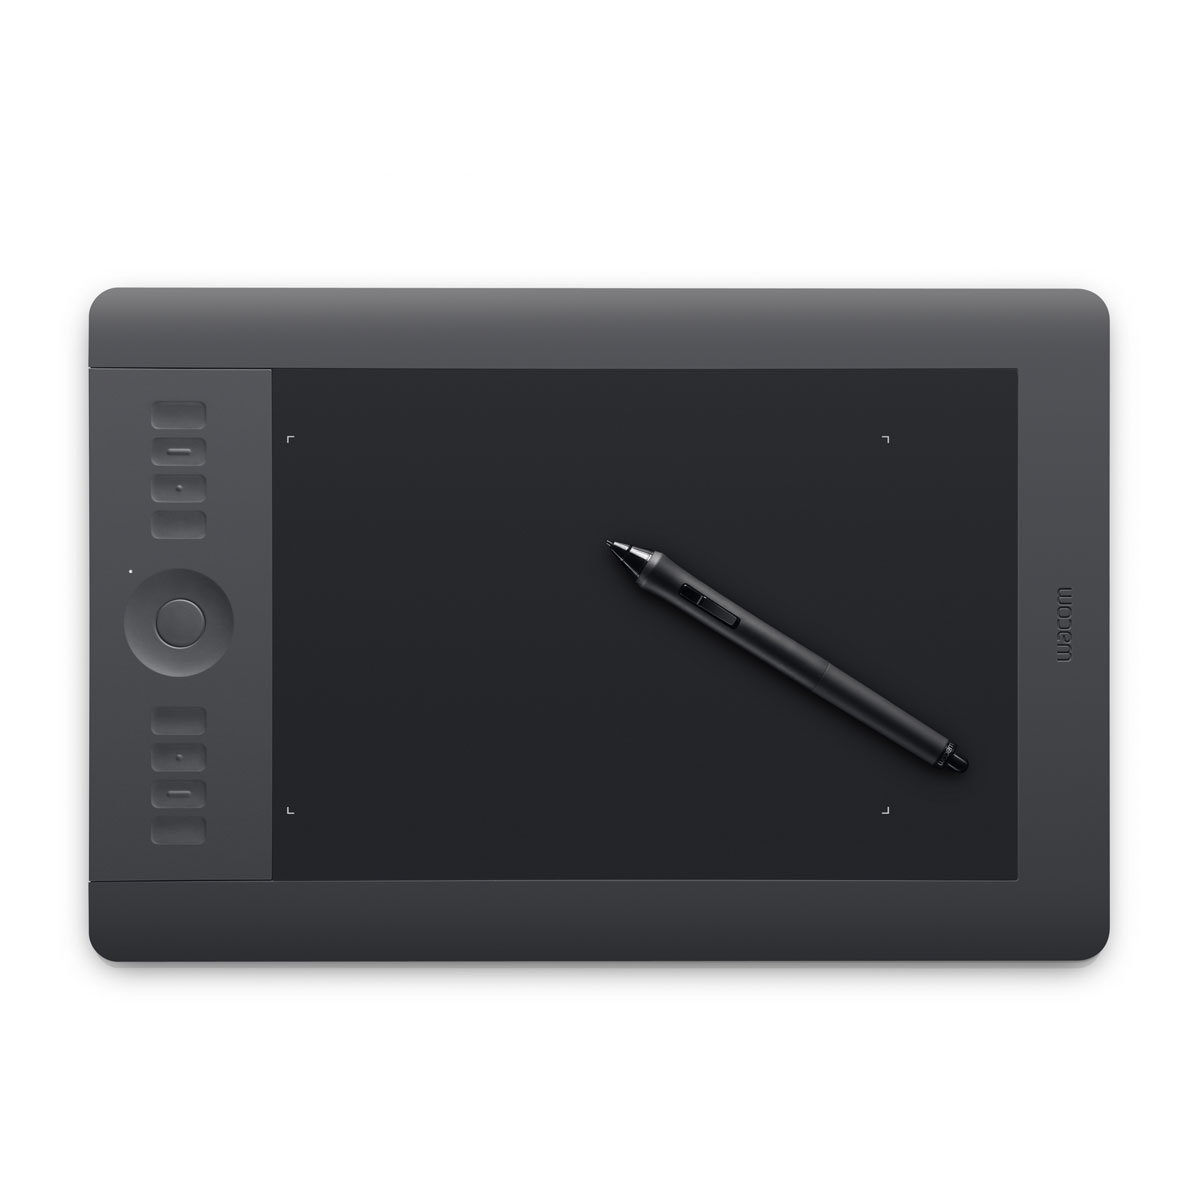 wacom intuos 5 touch m tablette graphique wacom sur ldlc. Black Bedroom Furniture Sets. Home Design Ideas